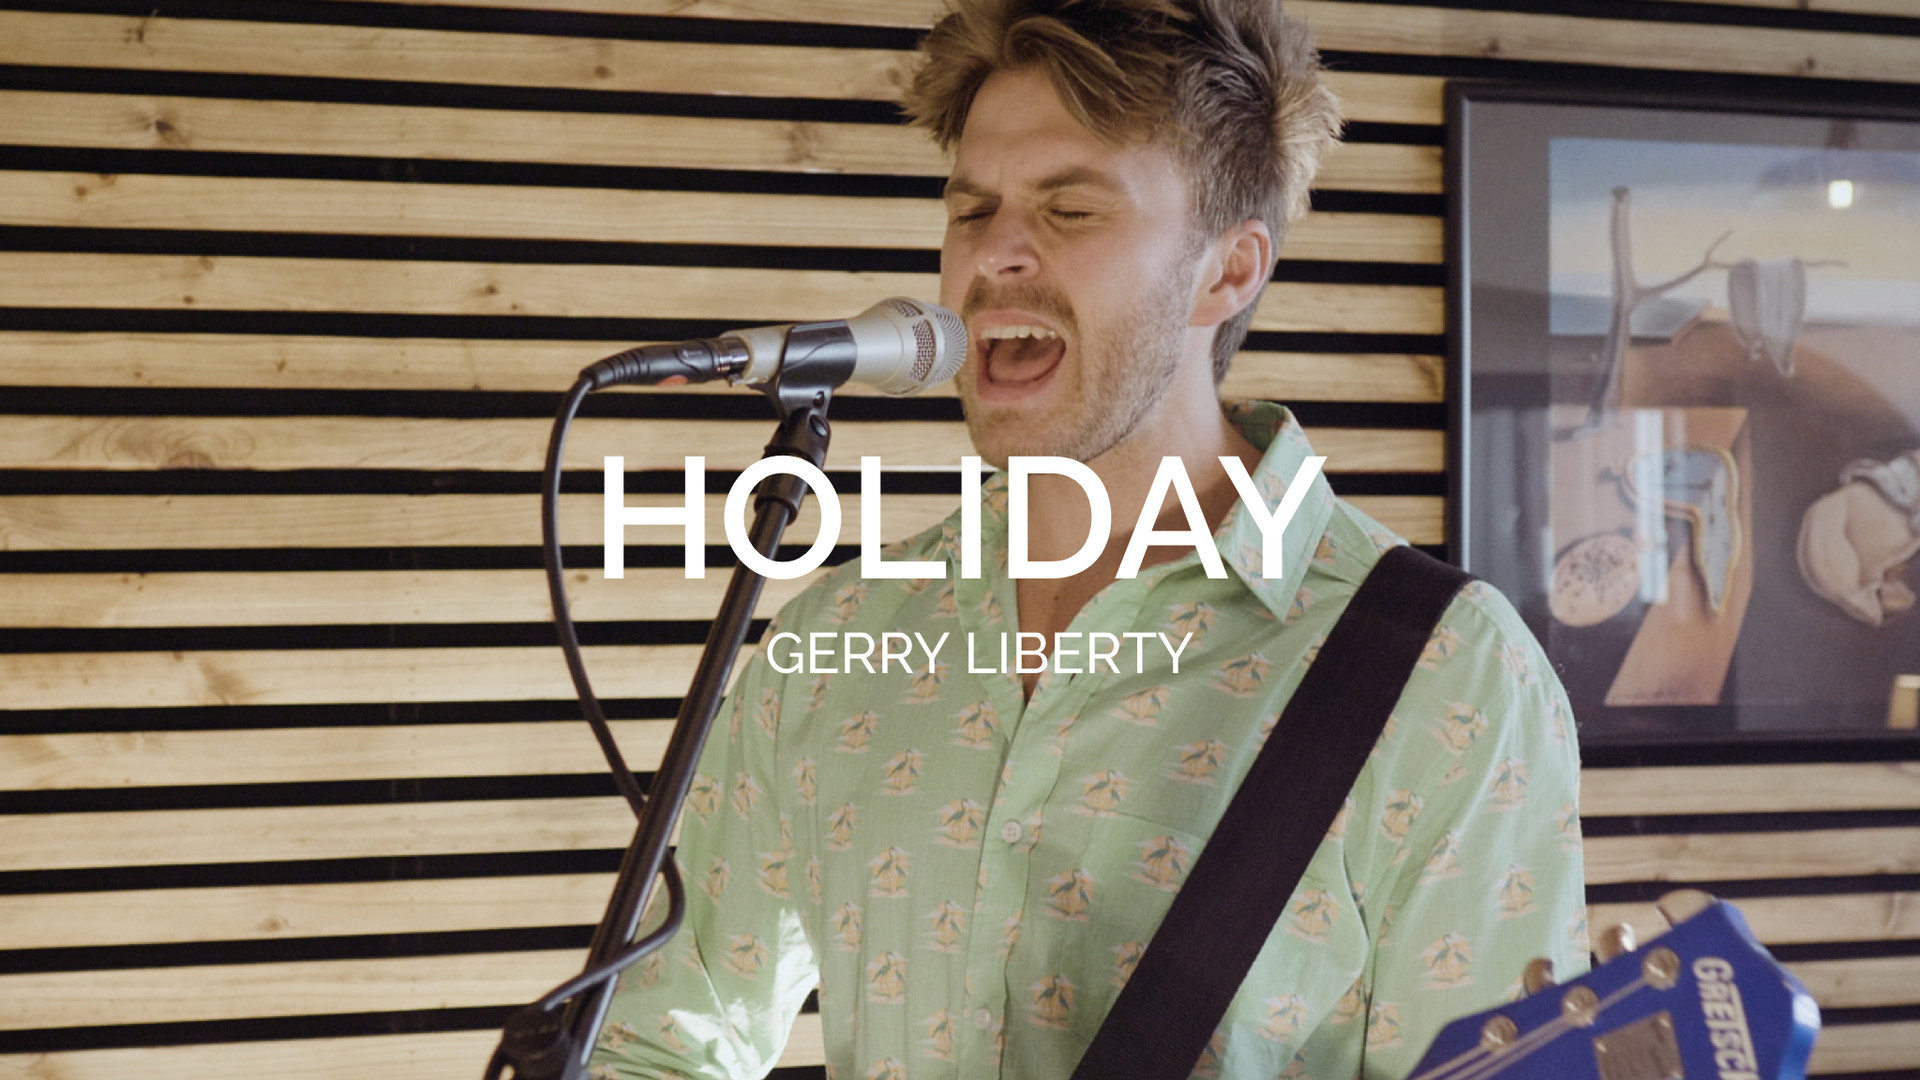 Gerry Liberty | Holiday Music Video